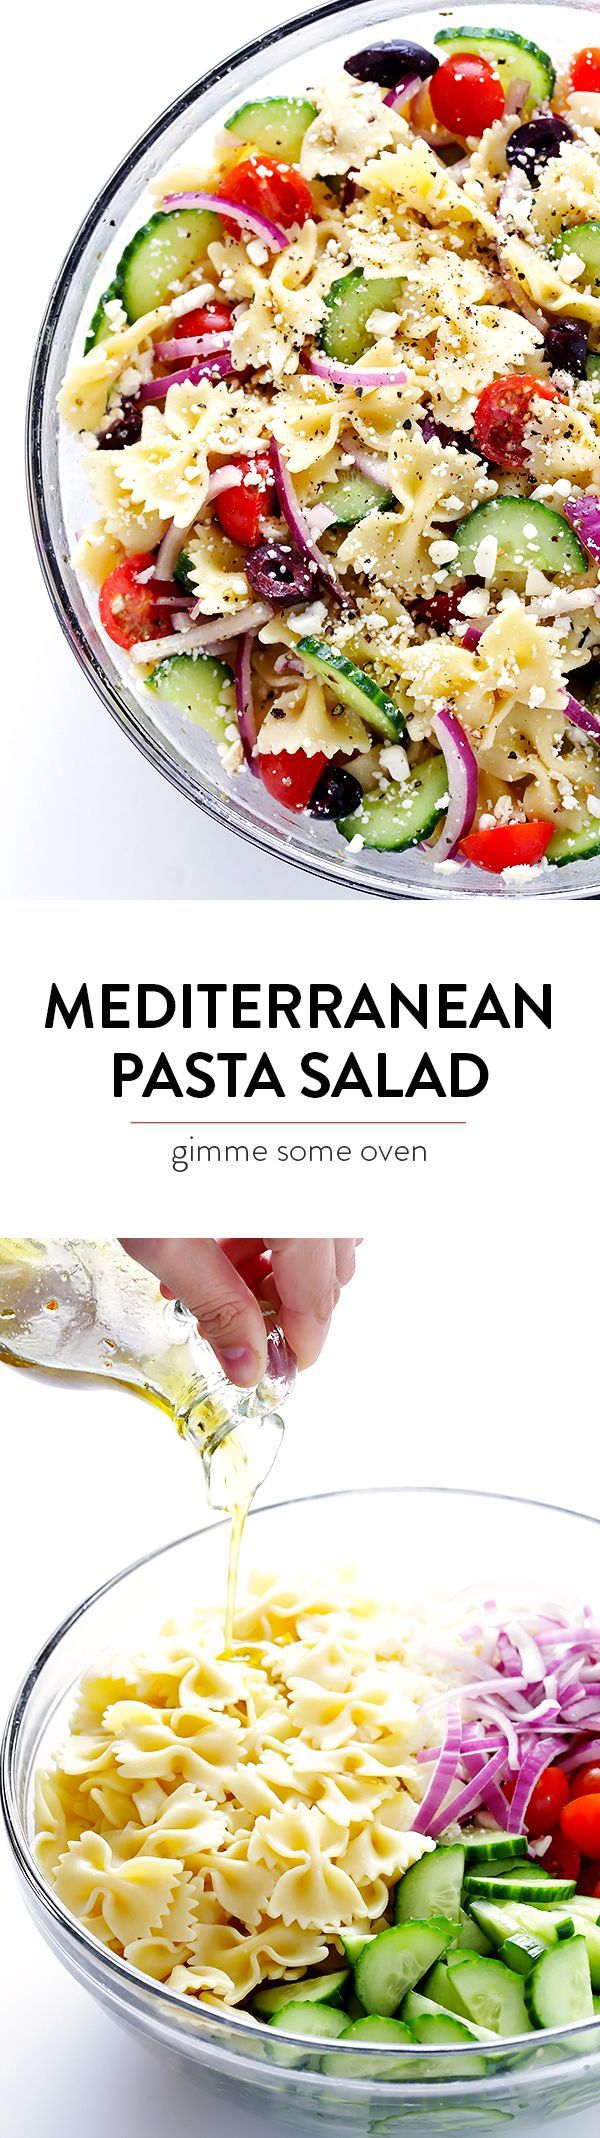 Mediterranean Pasta Salad -- quick and easy to make, and tossed with a tasty lemon-herb vinaigrette | gimmesomeoven.com #pastasalad #recipe #dinner